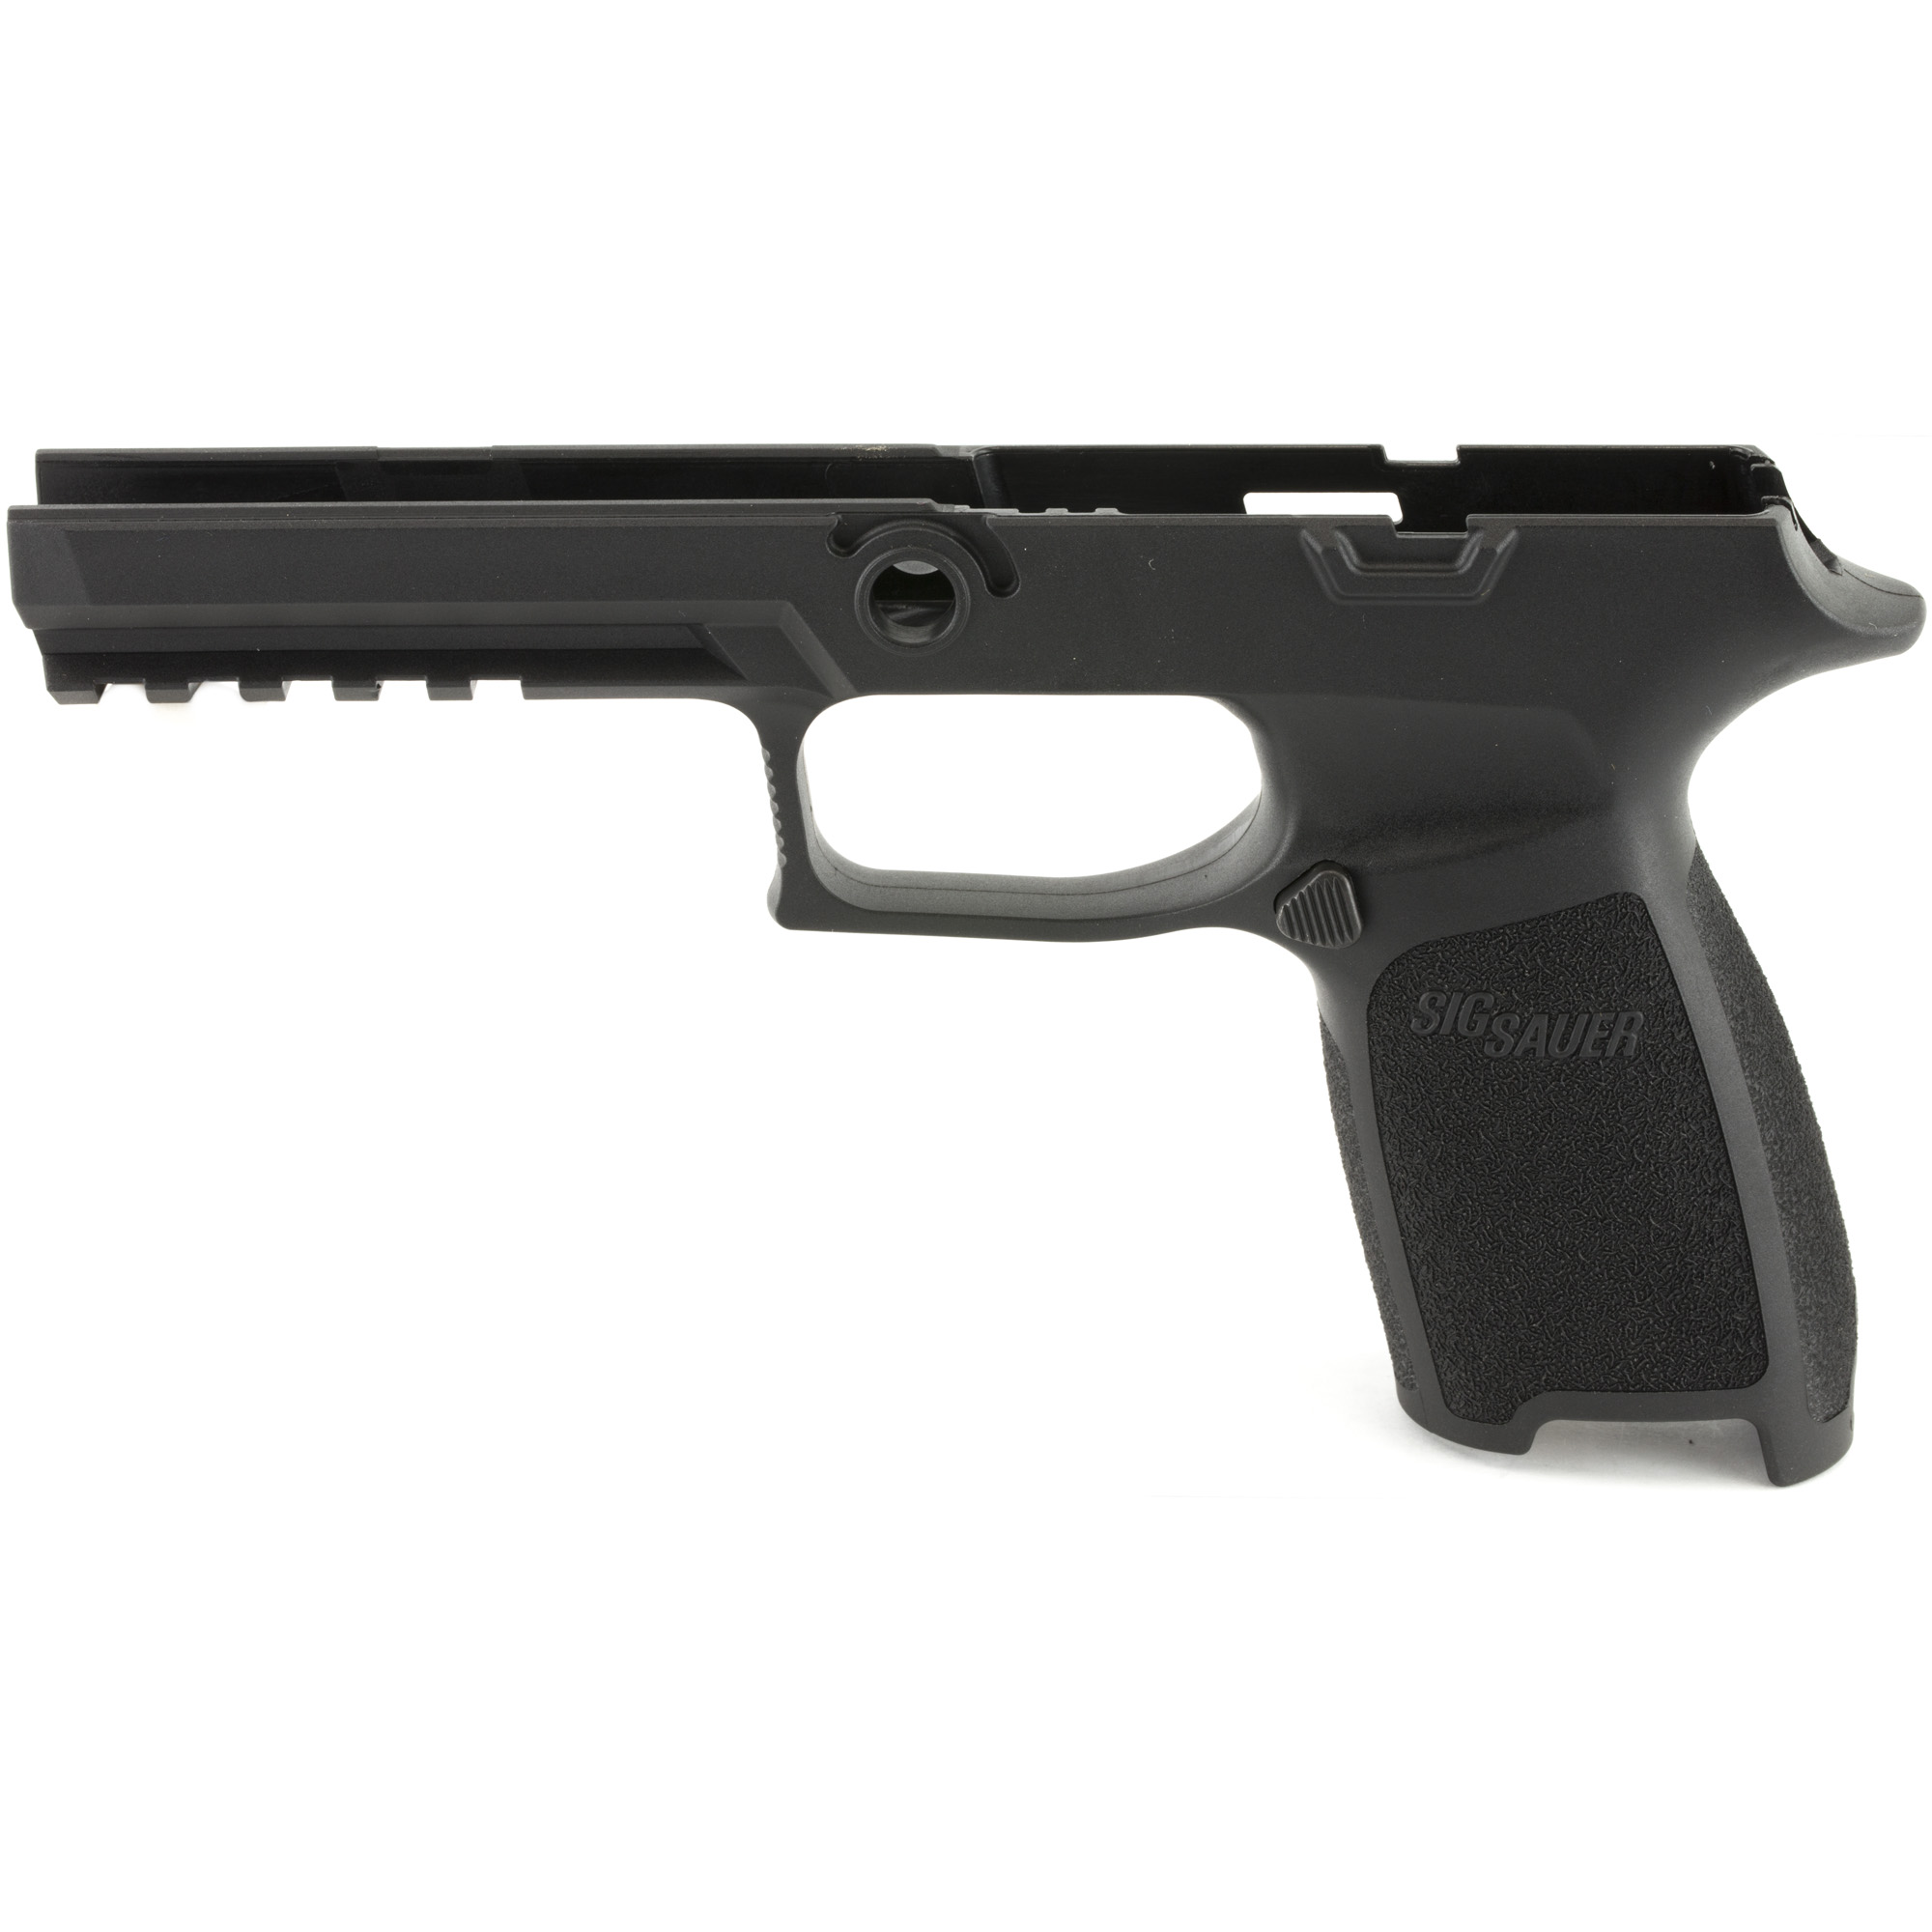 "Install your P320 / P250 firing control unit into this Grip Module Assembly to convert to a P320 or P250 full size chambered in 9mm"" .357 SIG"" .40AUTO. Requires the 9mm"" .357 SIG and .40AUTO slide and barrel."